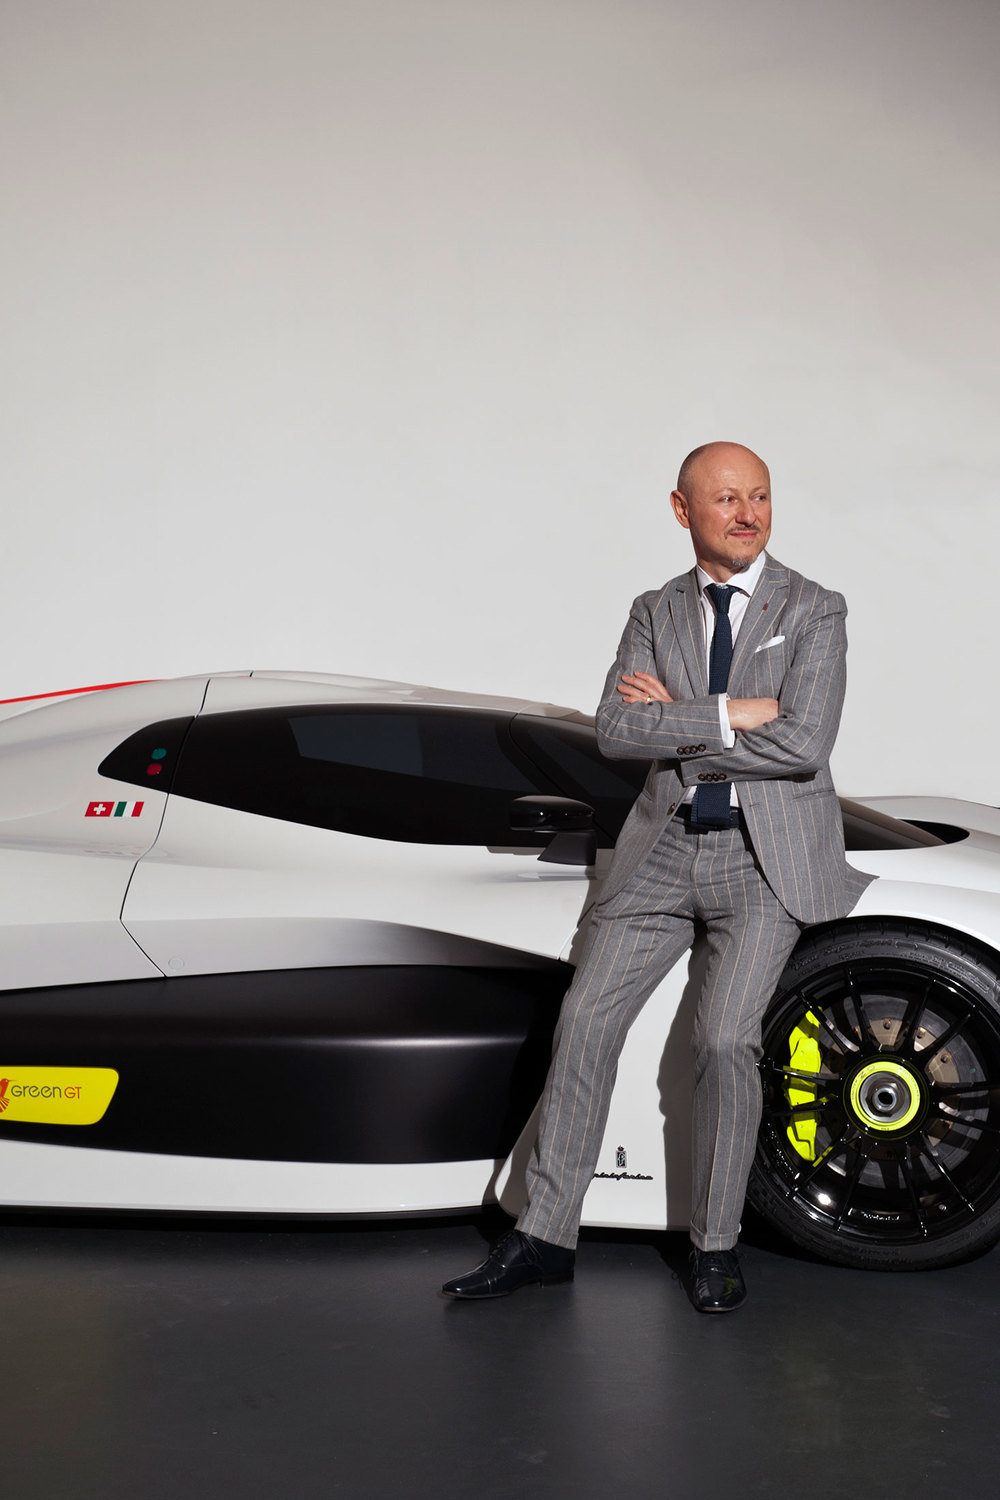 Designer Fabio Filippini with the H2 speed concept car. (Photo: Andrea Wyner)